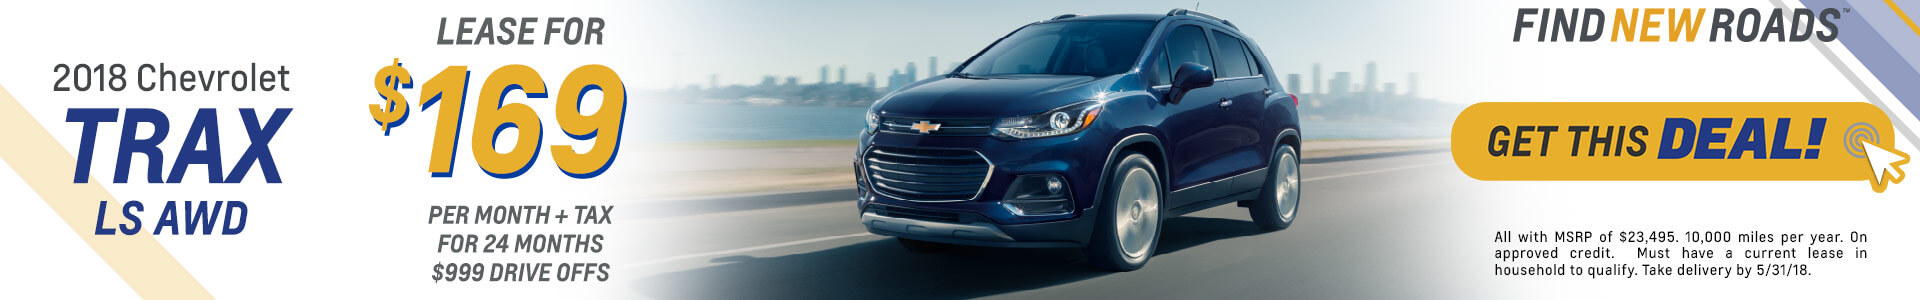 2018 Chevy Trax $169